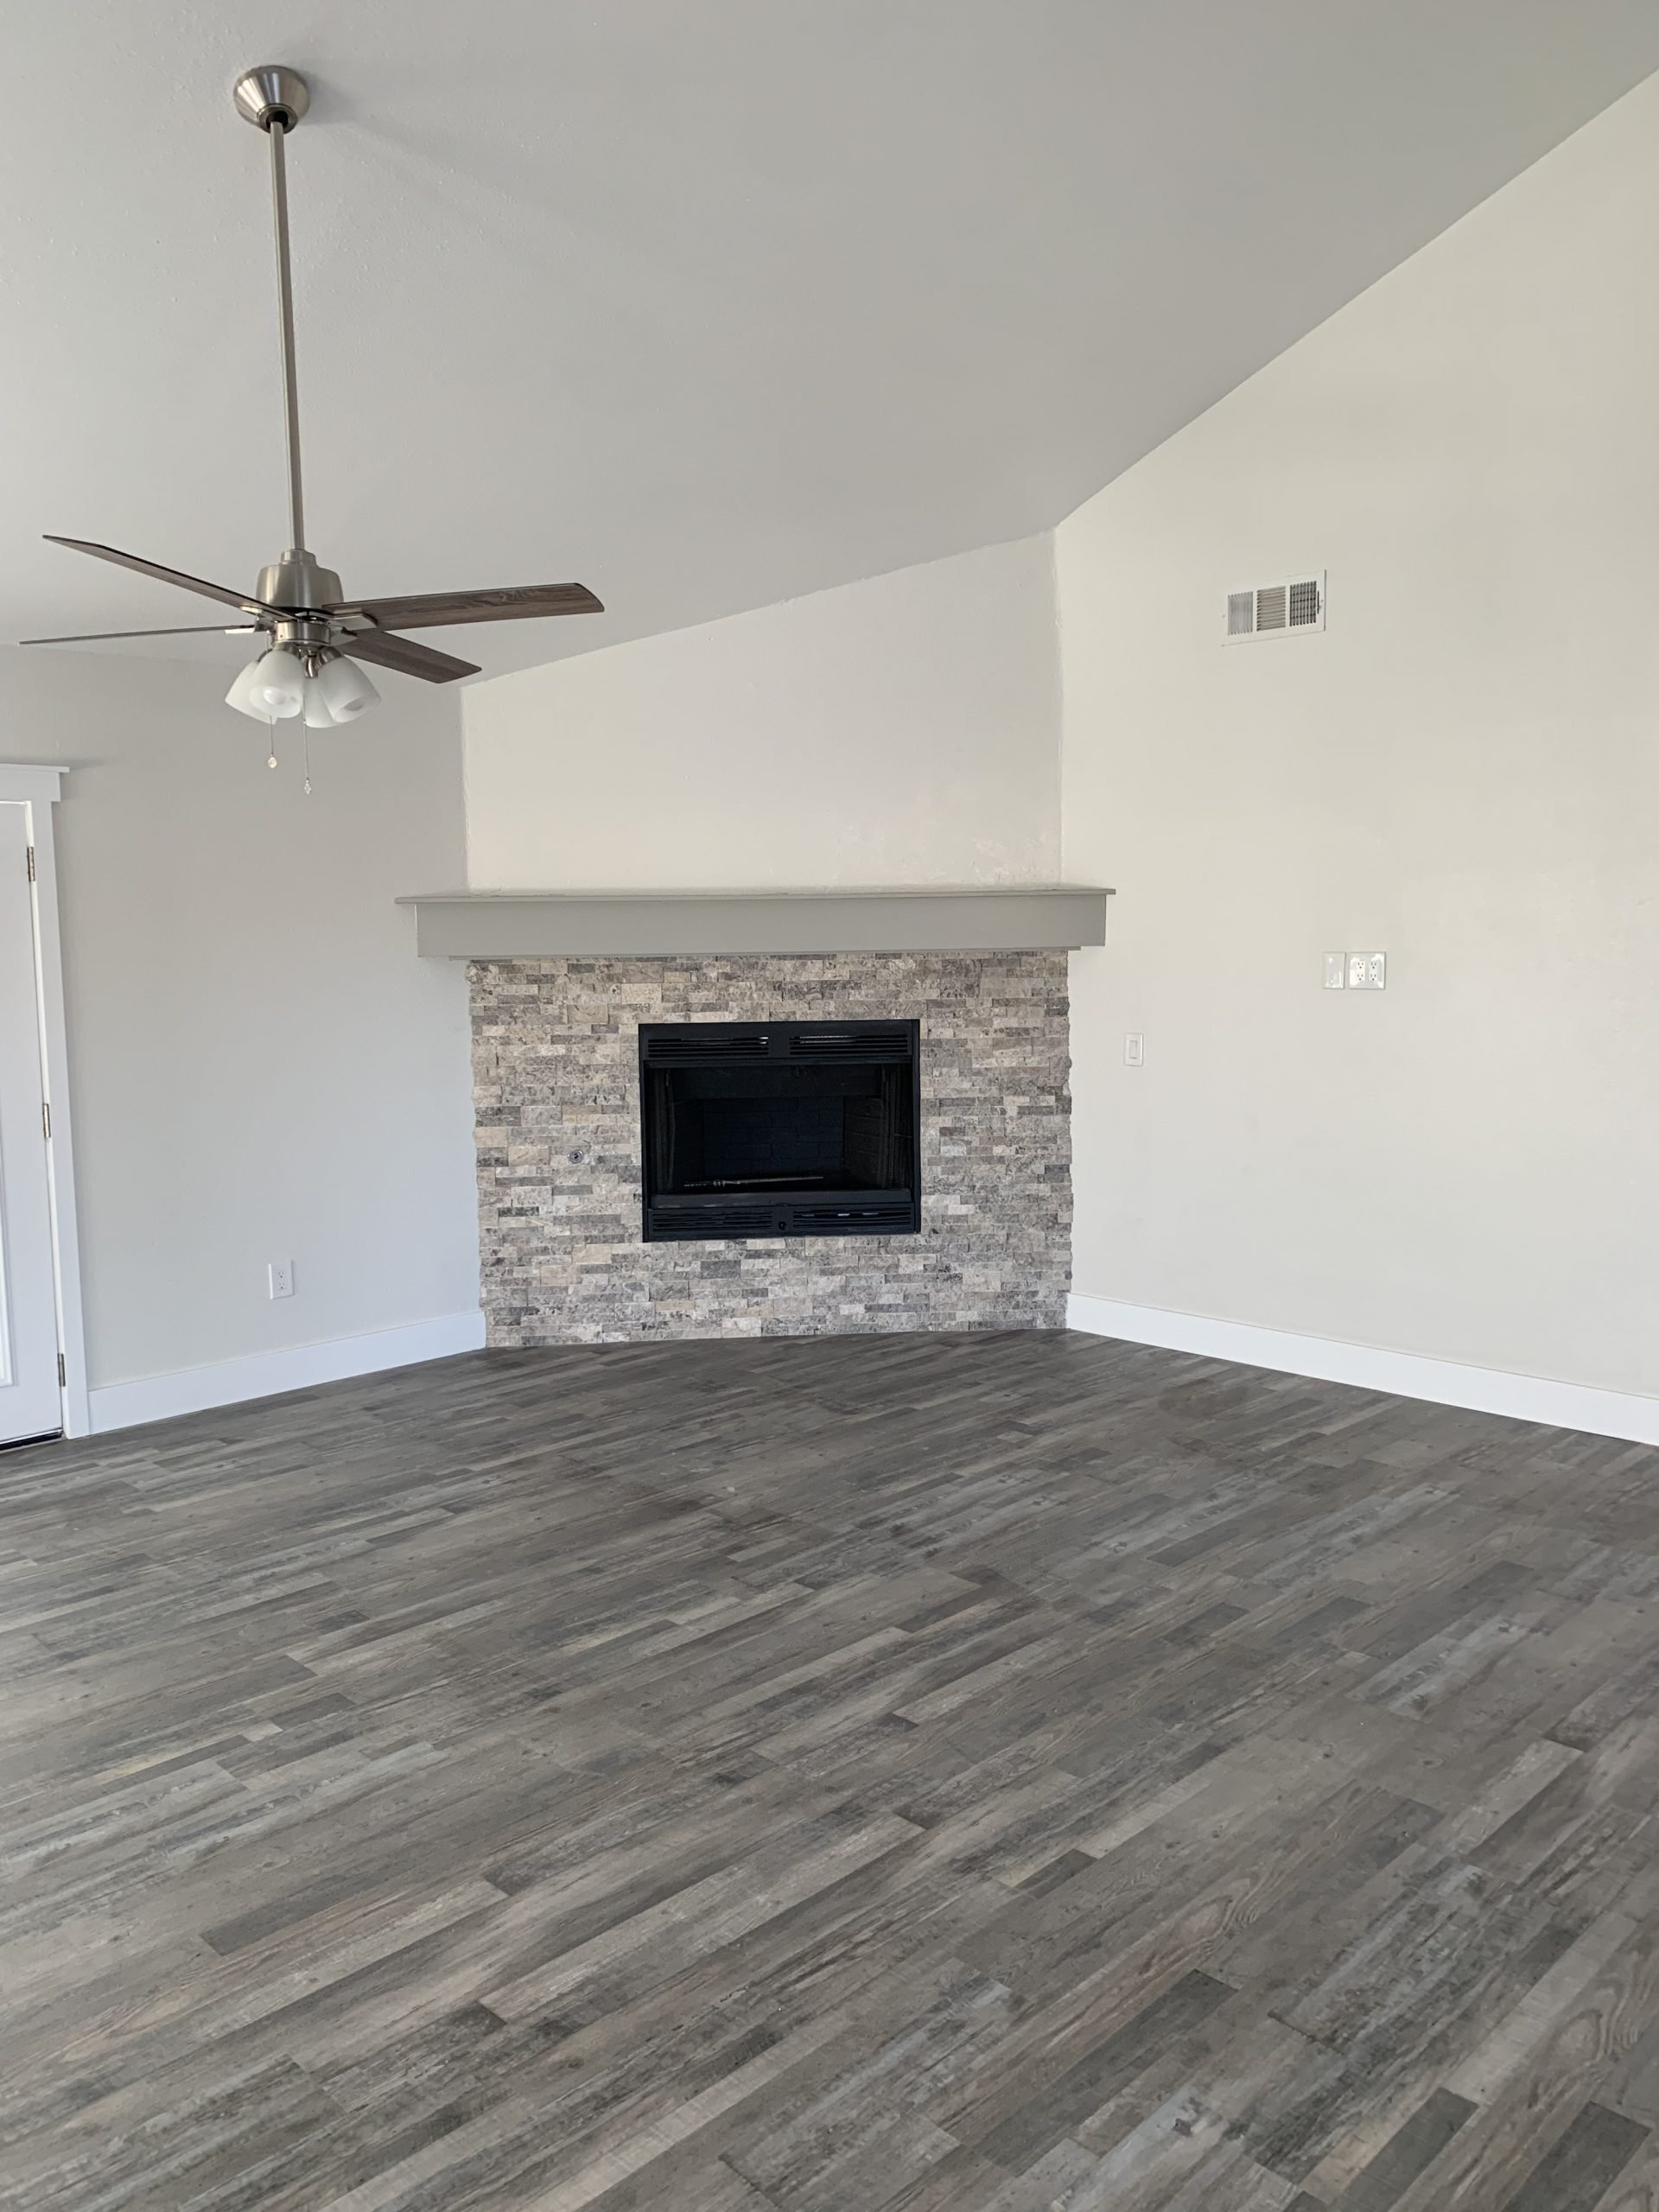 12915 Casco Rd, Apple Valley, CA 92308 - SOLD - Wall2Wall ...